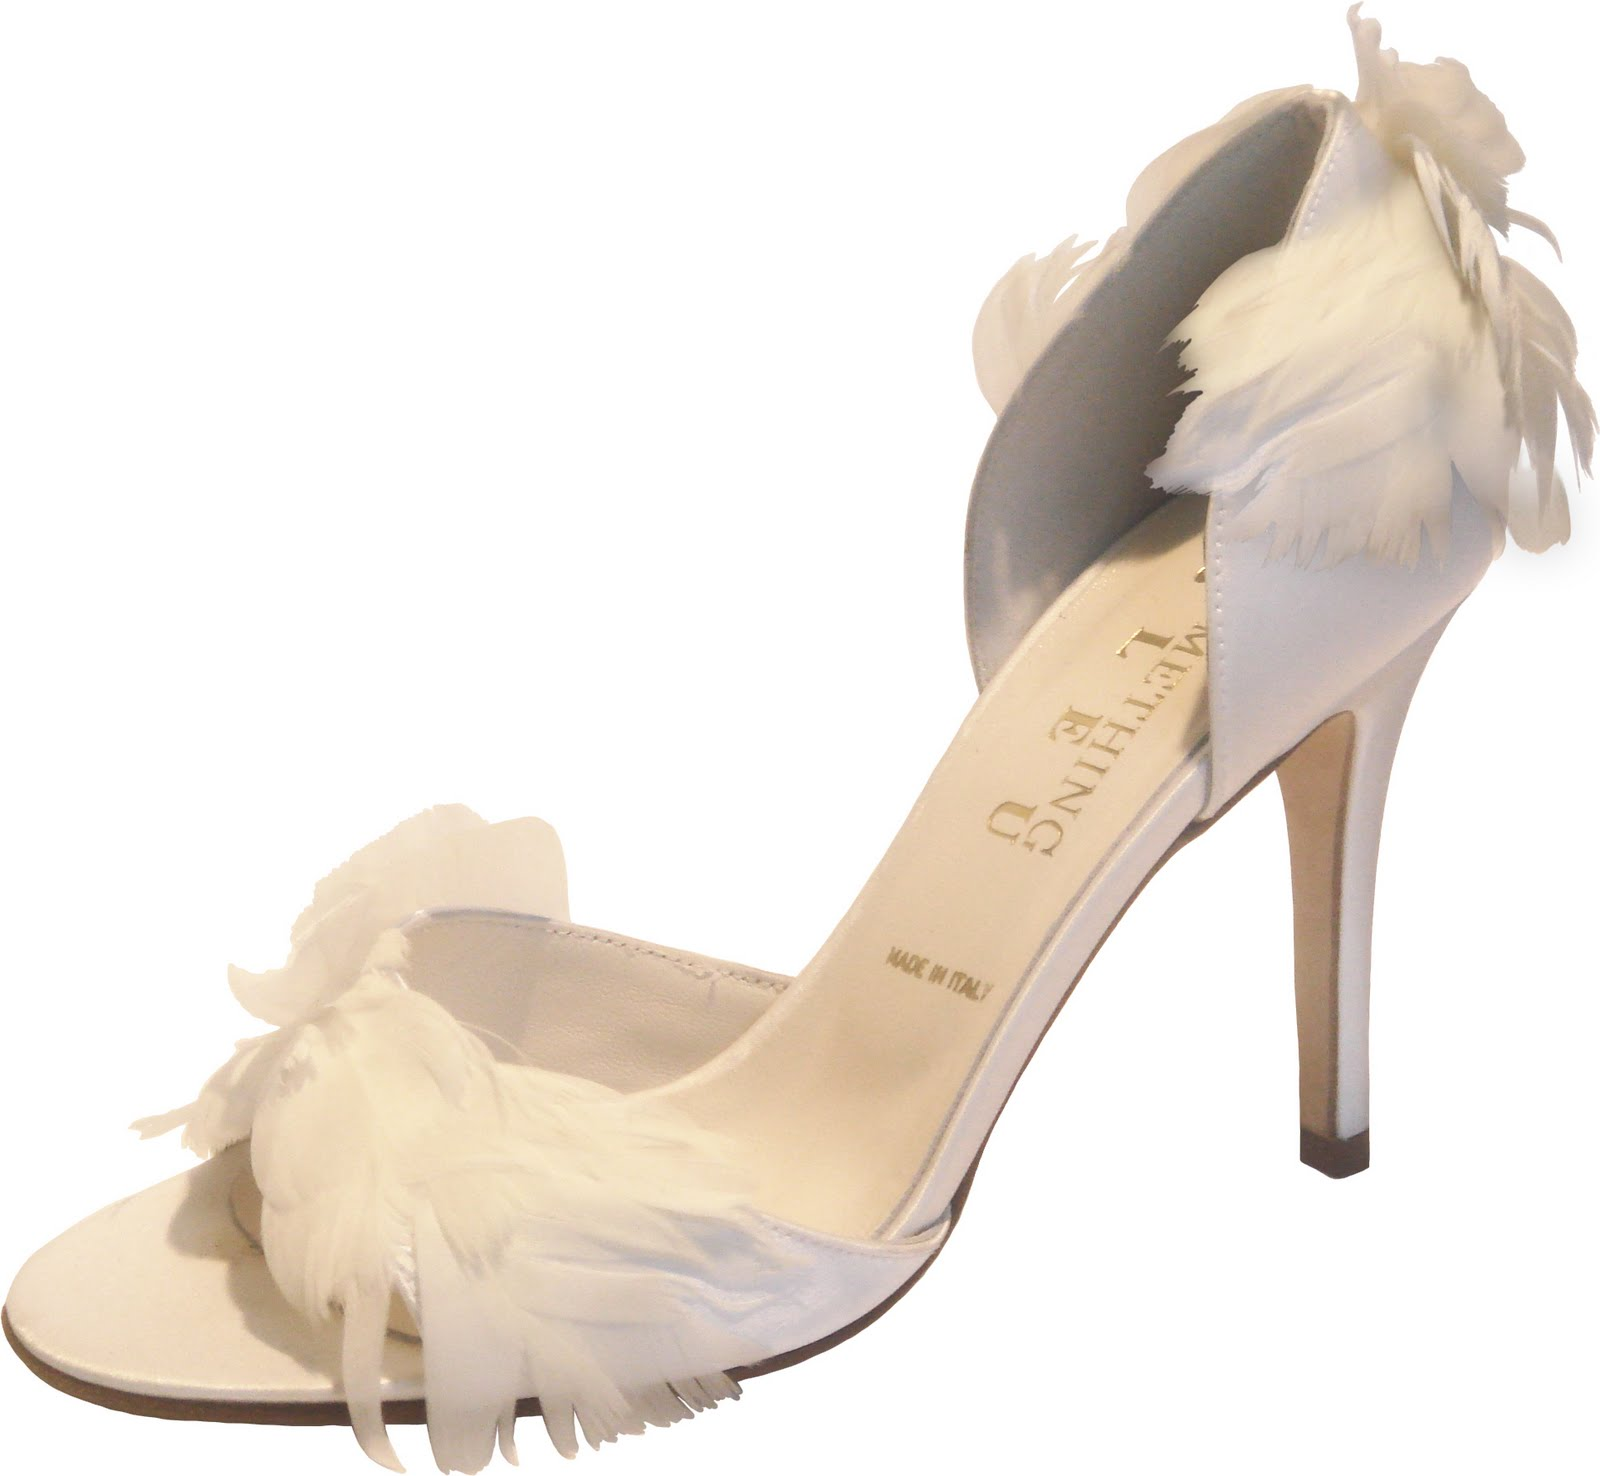 f7ee8cac5 These shoes aren t solely for brides (no pun intended)